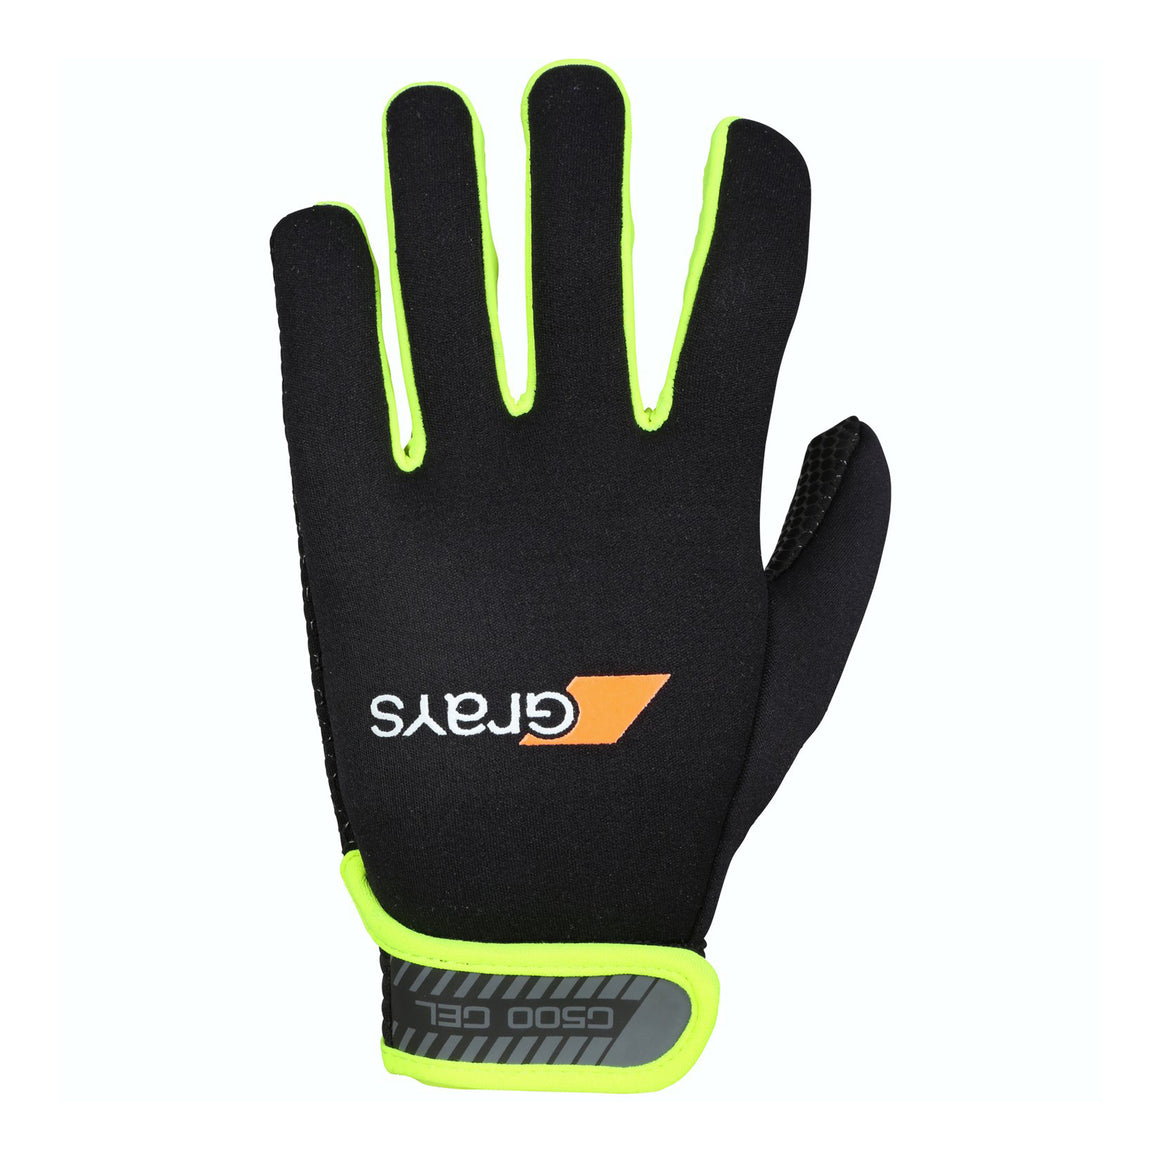 G500 Gel Gloves in Black & Lemon